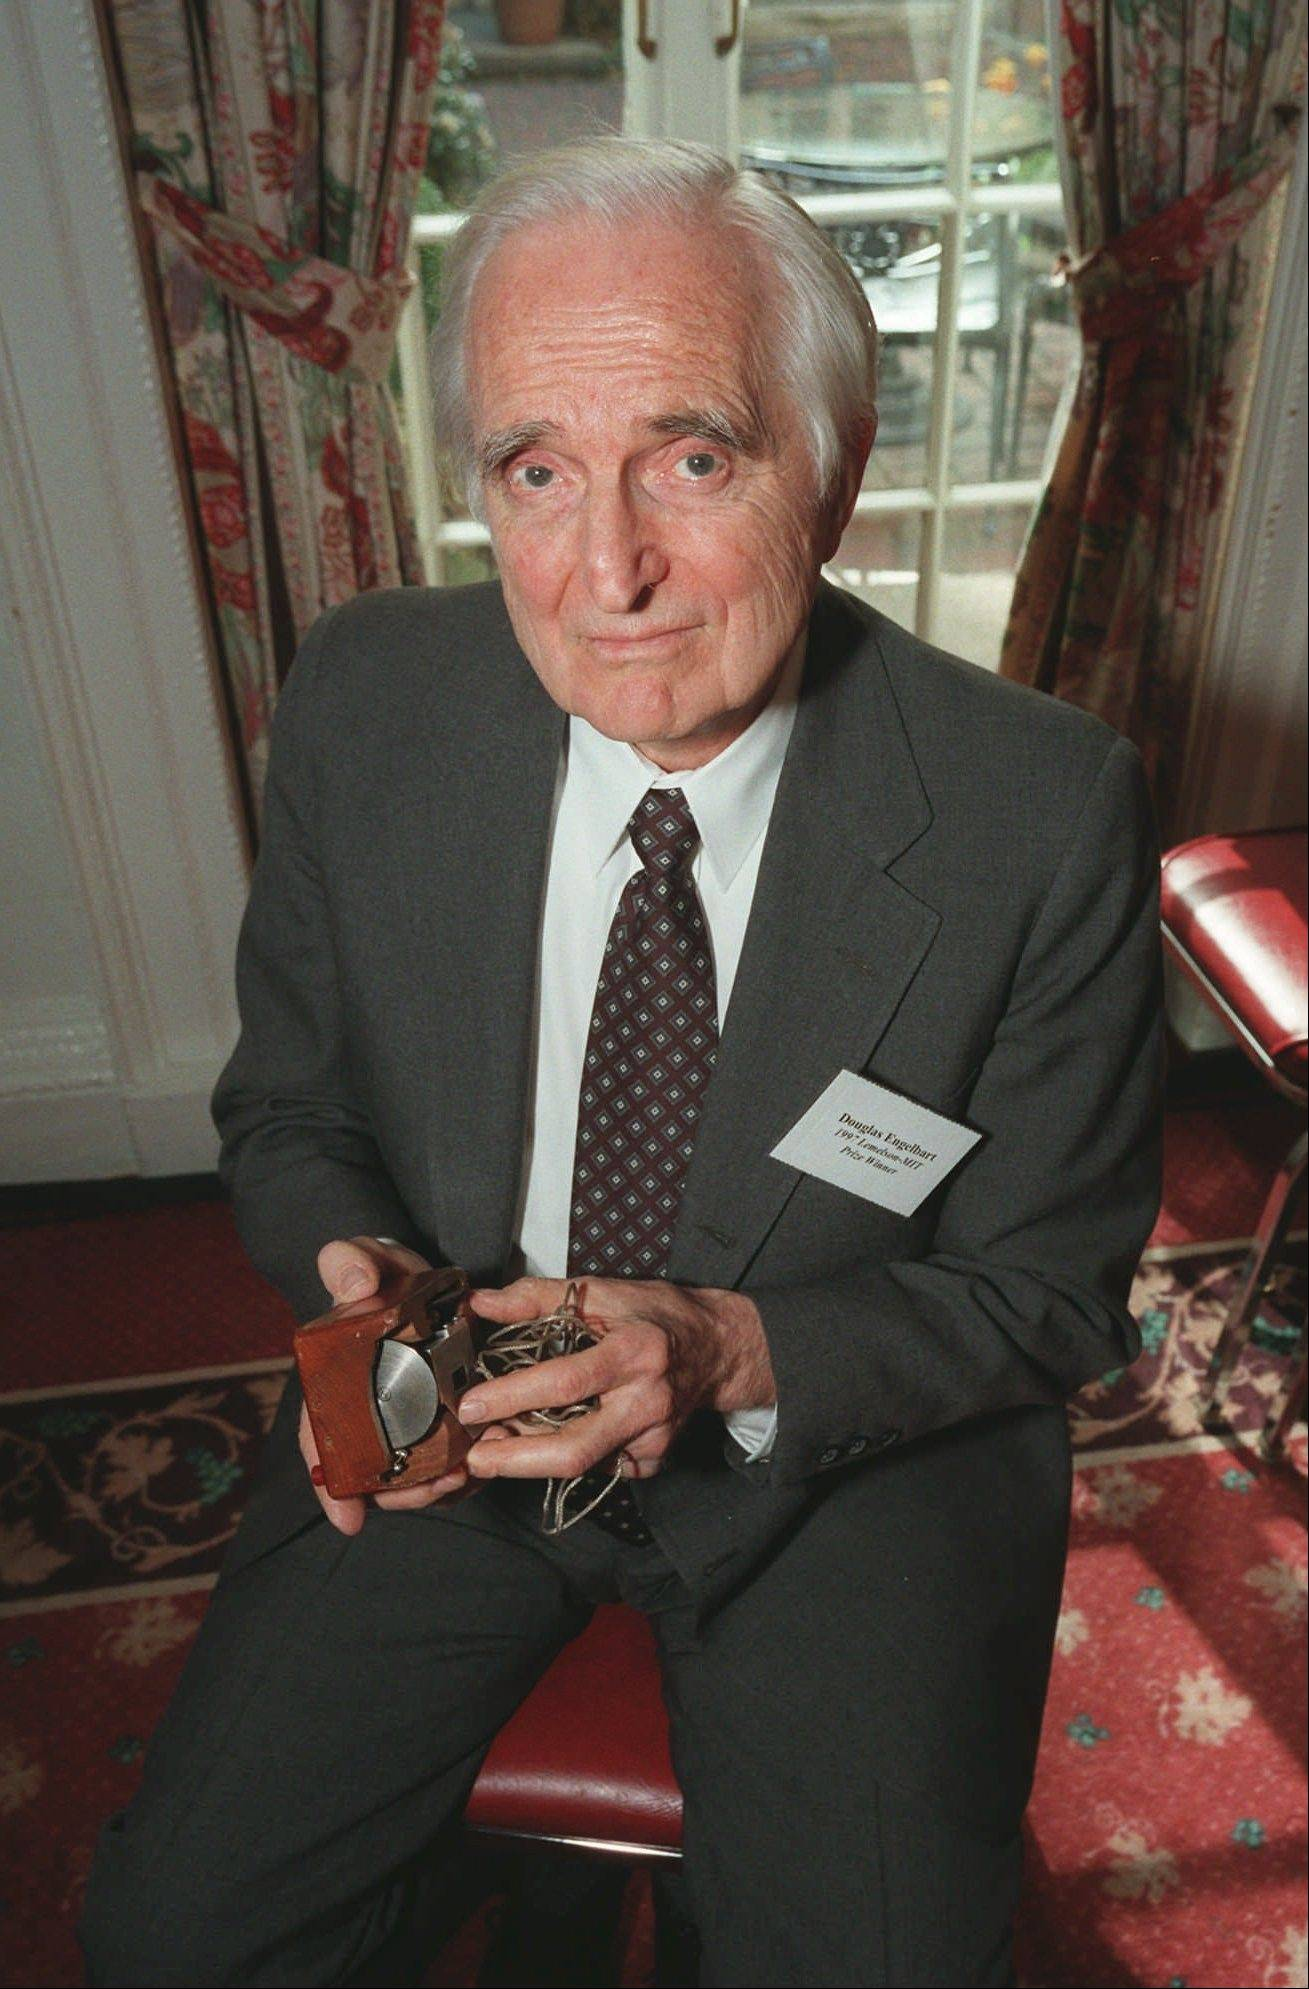 In this April 9, 1997, file photo, Doug Engelbart, inventor of the computer mouse and winner of the half-million dollar 1997 Lemelson-MIT prize, poses with the computer mouse he designed, in New York. Engelbart has died at the age of 88. The cause of death wasn�t immediately known.